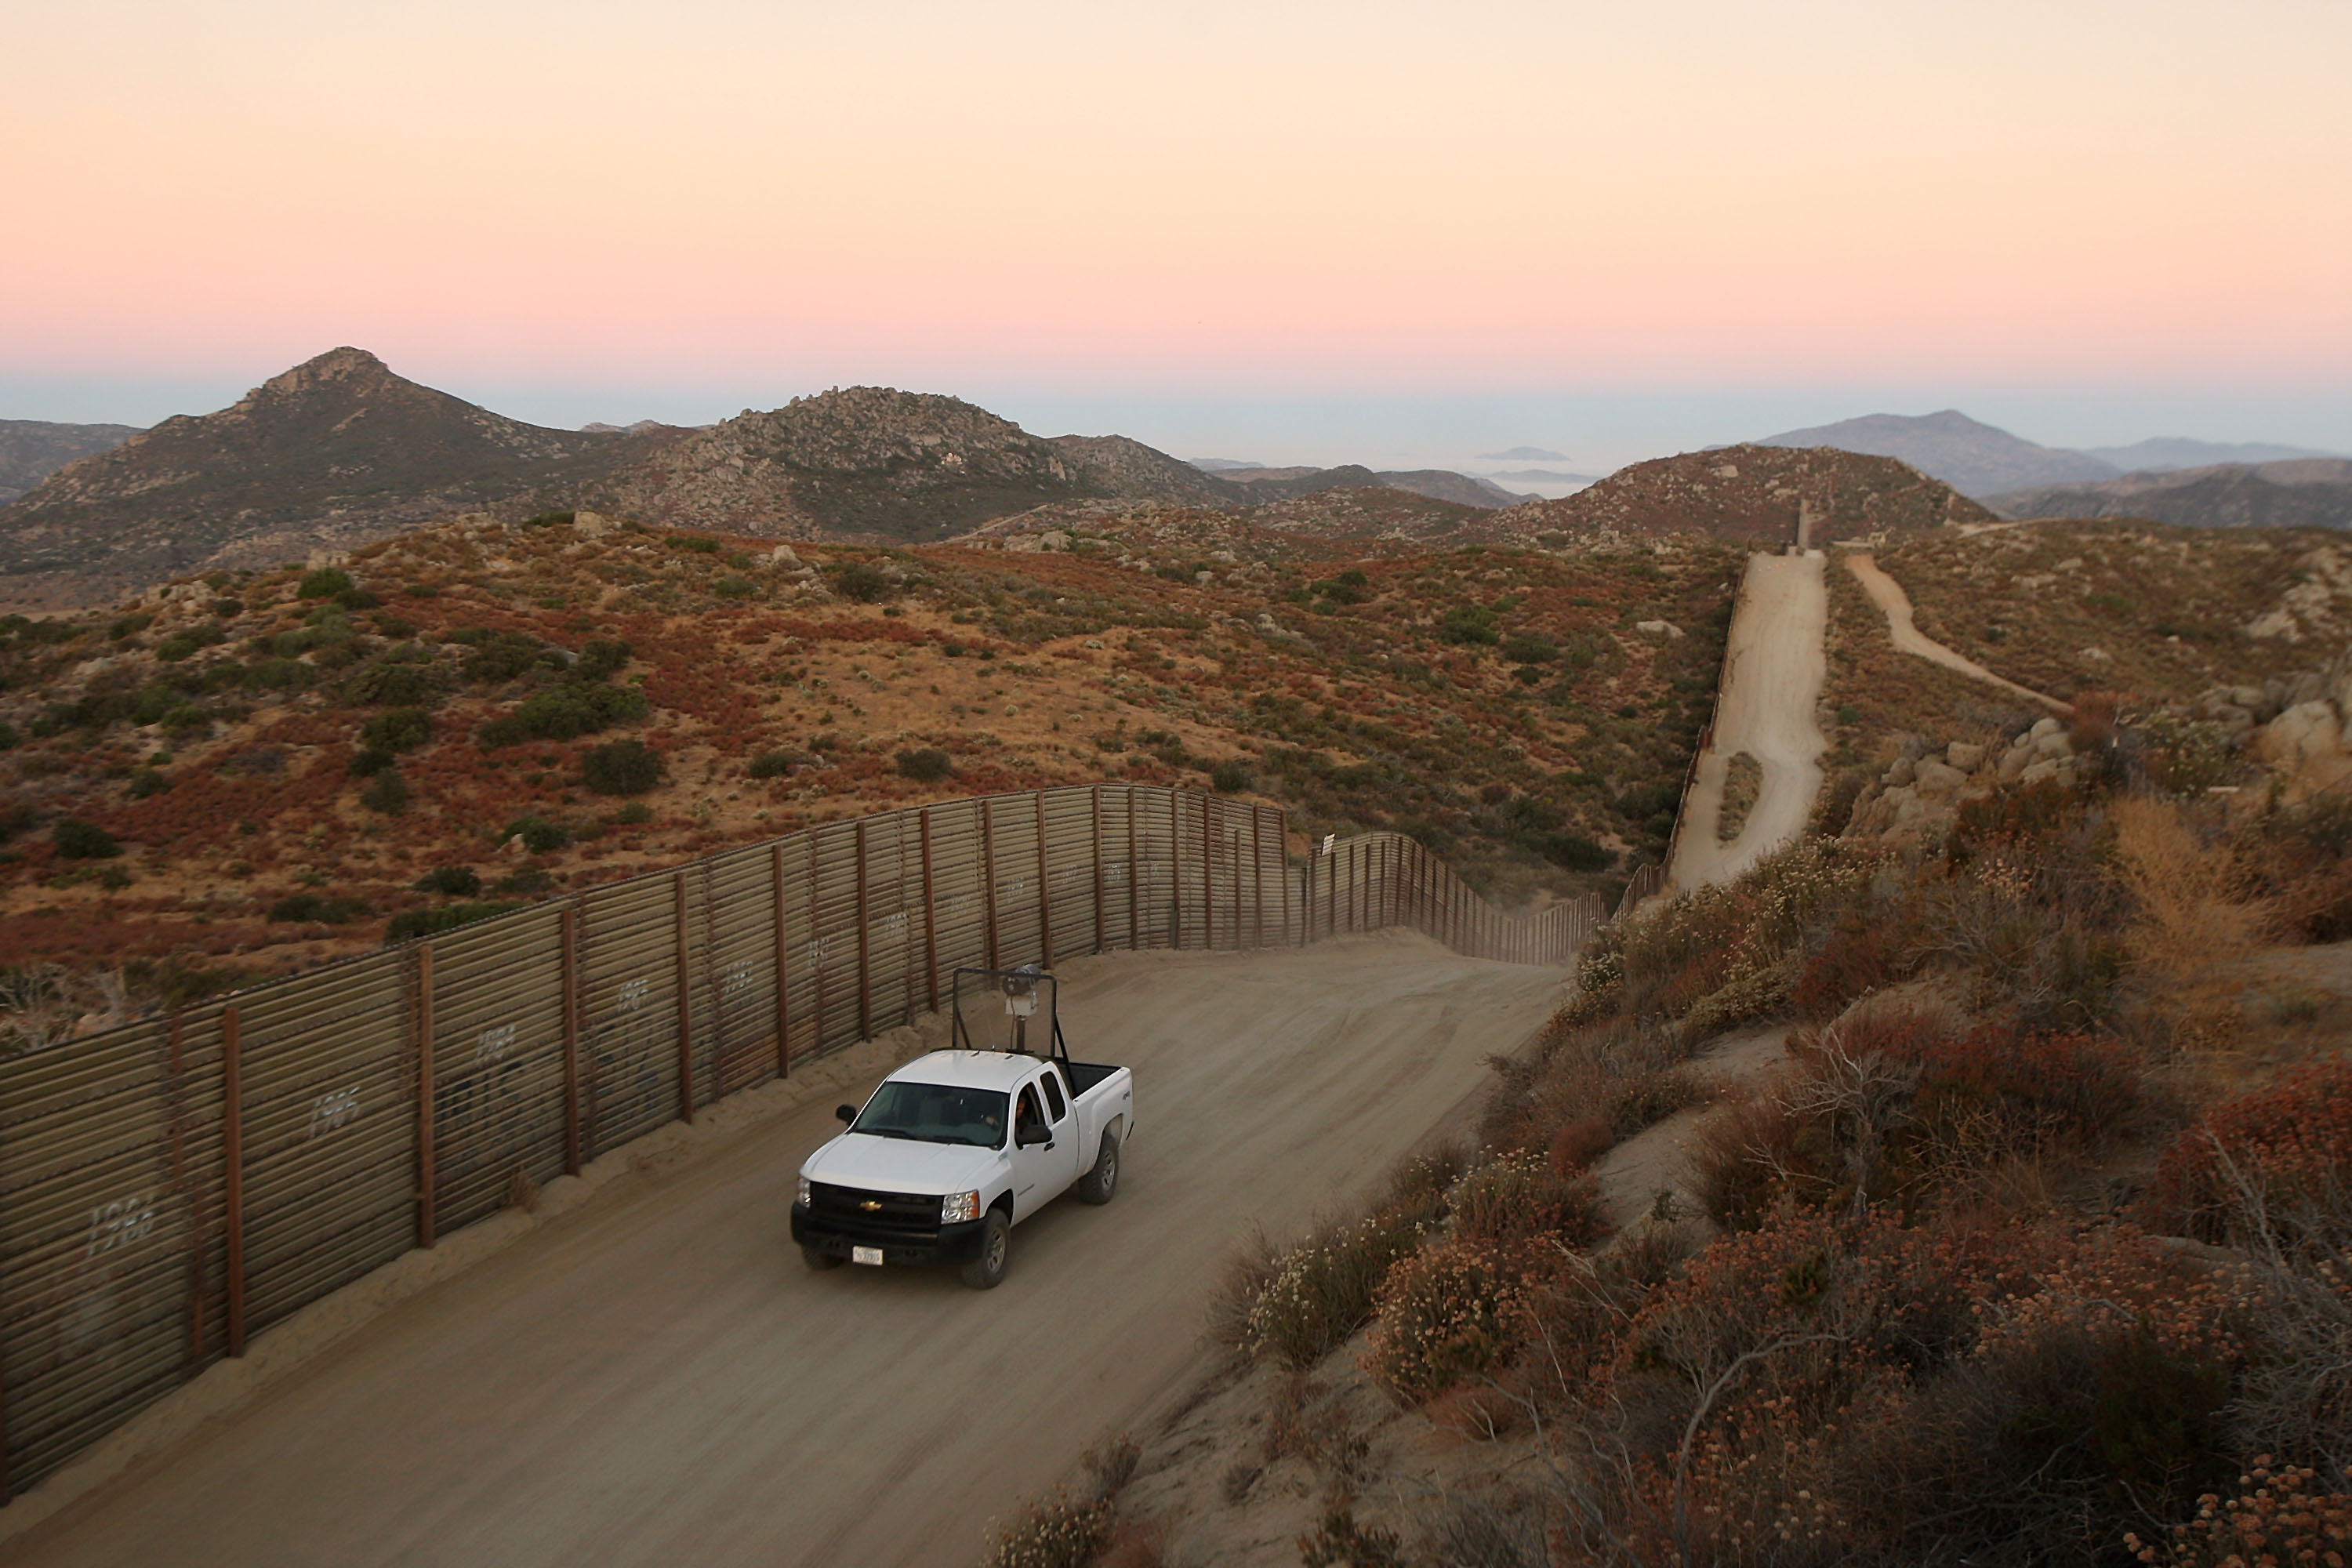 Tension Rise On Mexican Border After Border Patrol Agent Slain Last Week. (Photo by David McNew/Getty Images)